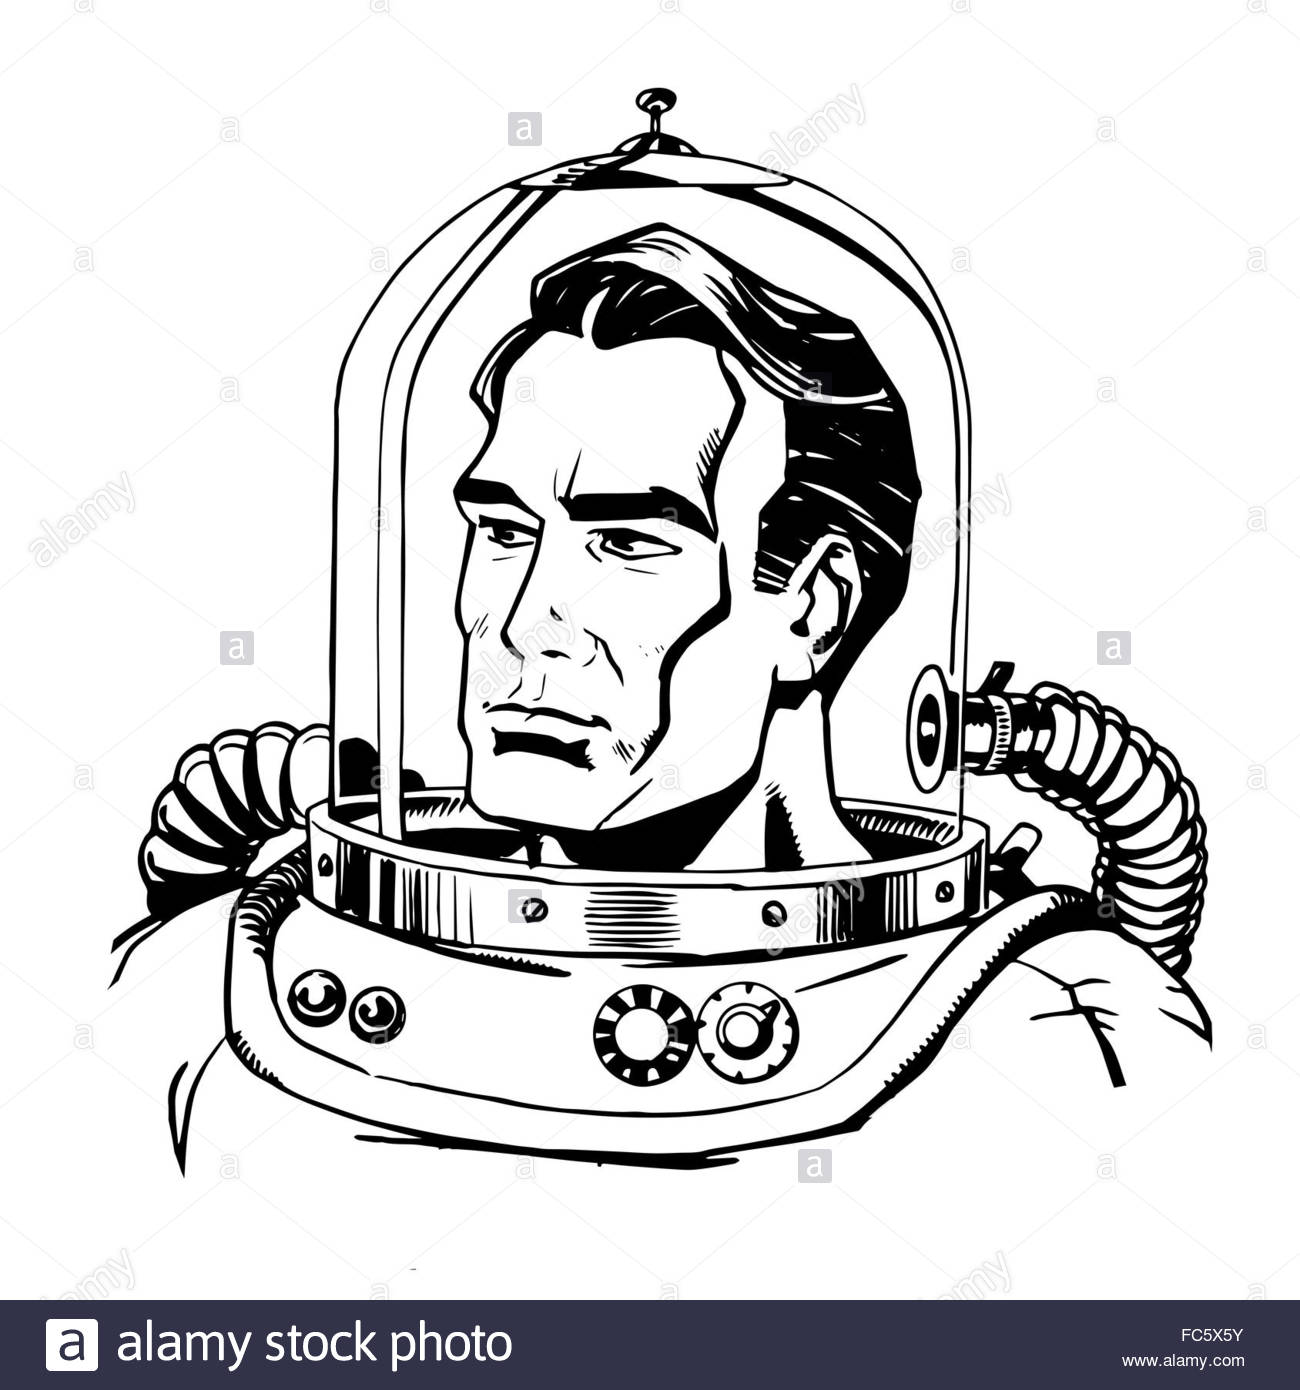 1300x1390 Retro Astronaut Line Art Stock Photo, Royalty Free Image 93558023